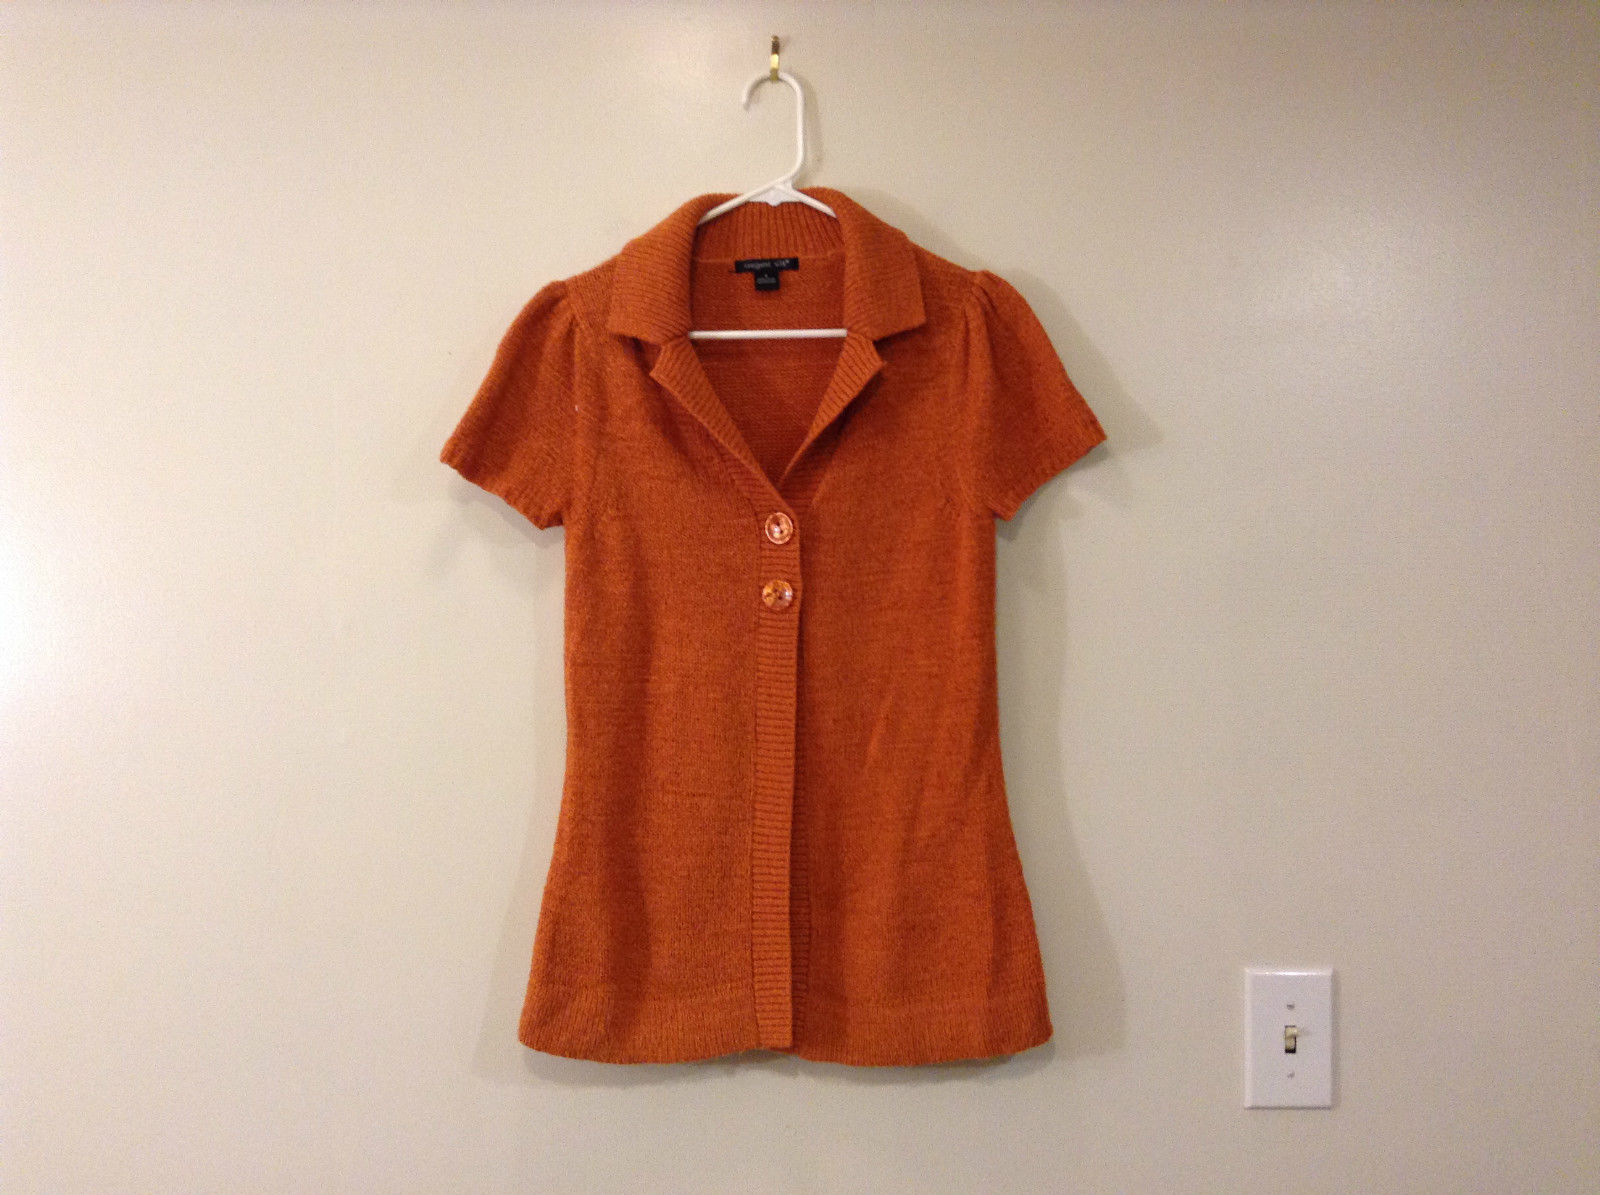 Calm Orange Red August Silk Knitted Short Sleeve Sweater V Neck Size Small